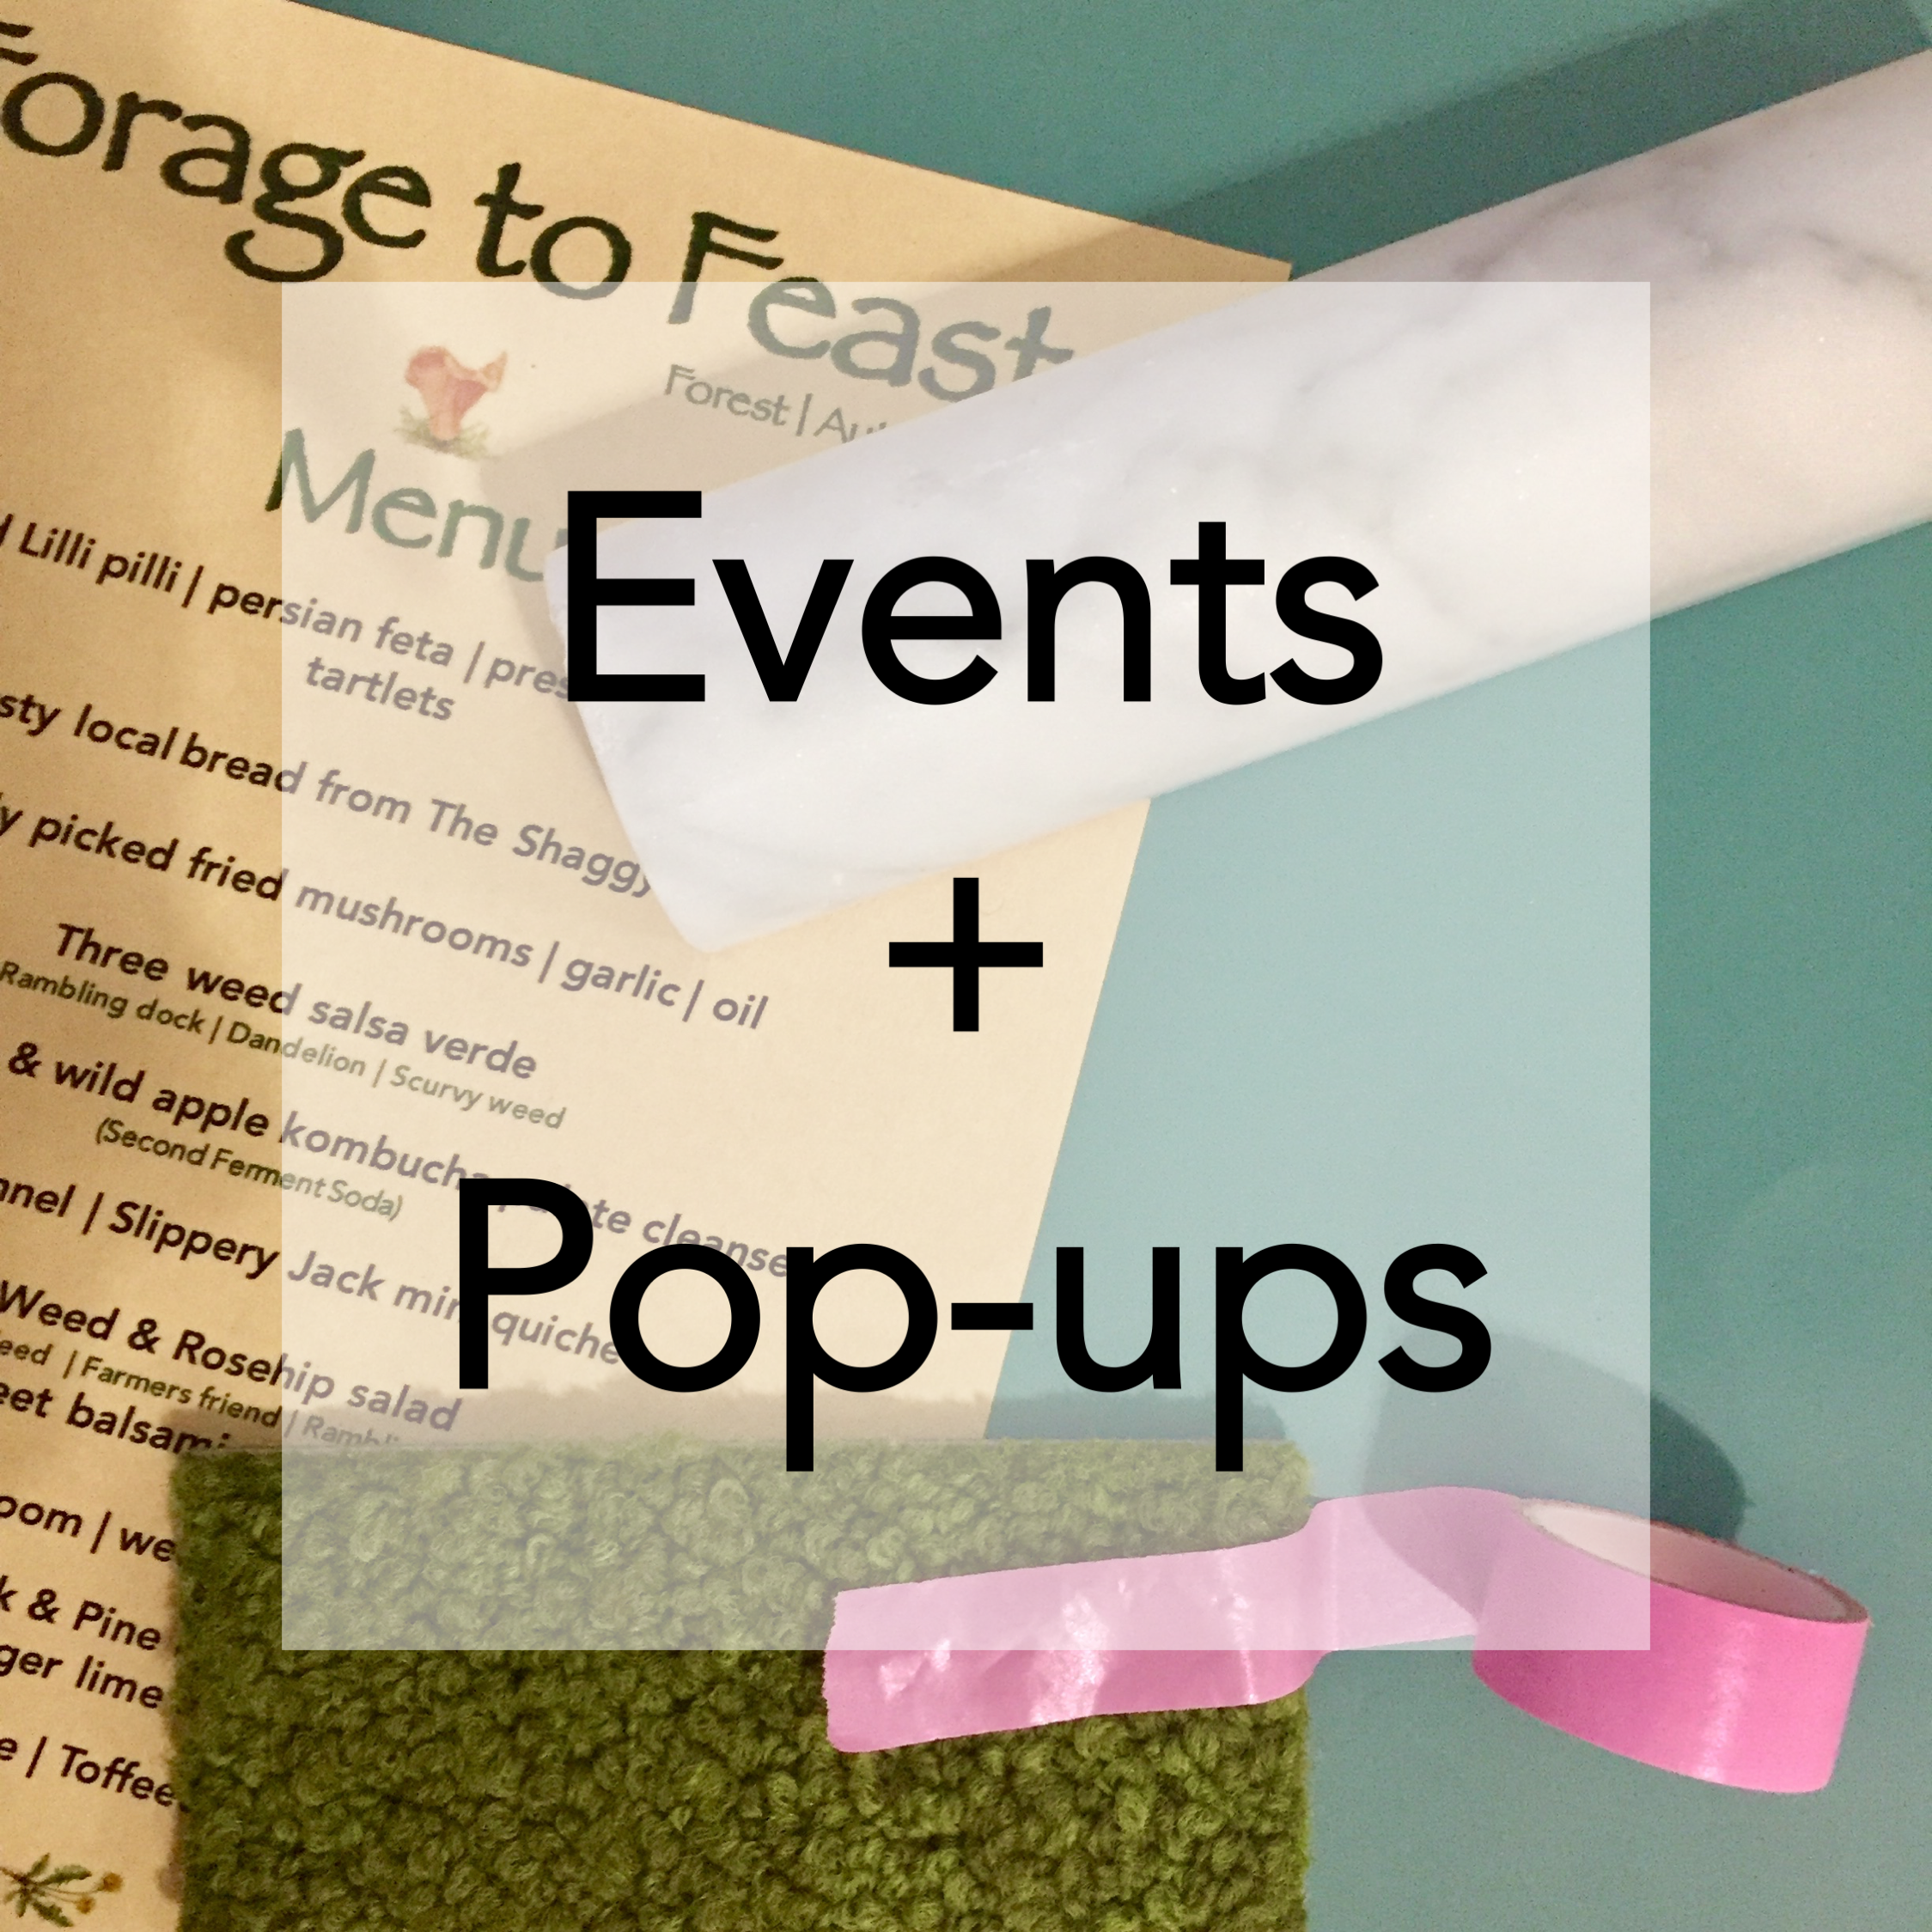 Latest collaborations, Forage to Feast pop-ups, event styling and more…….